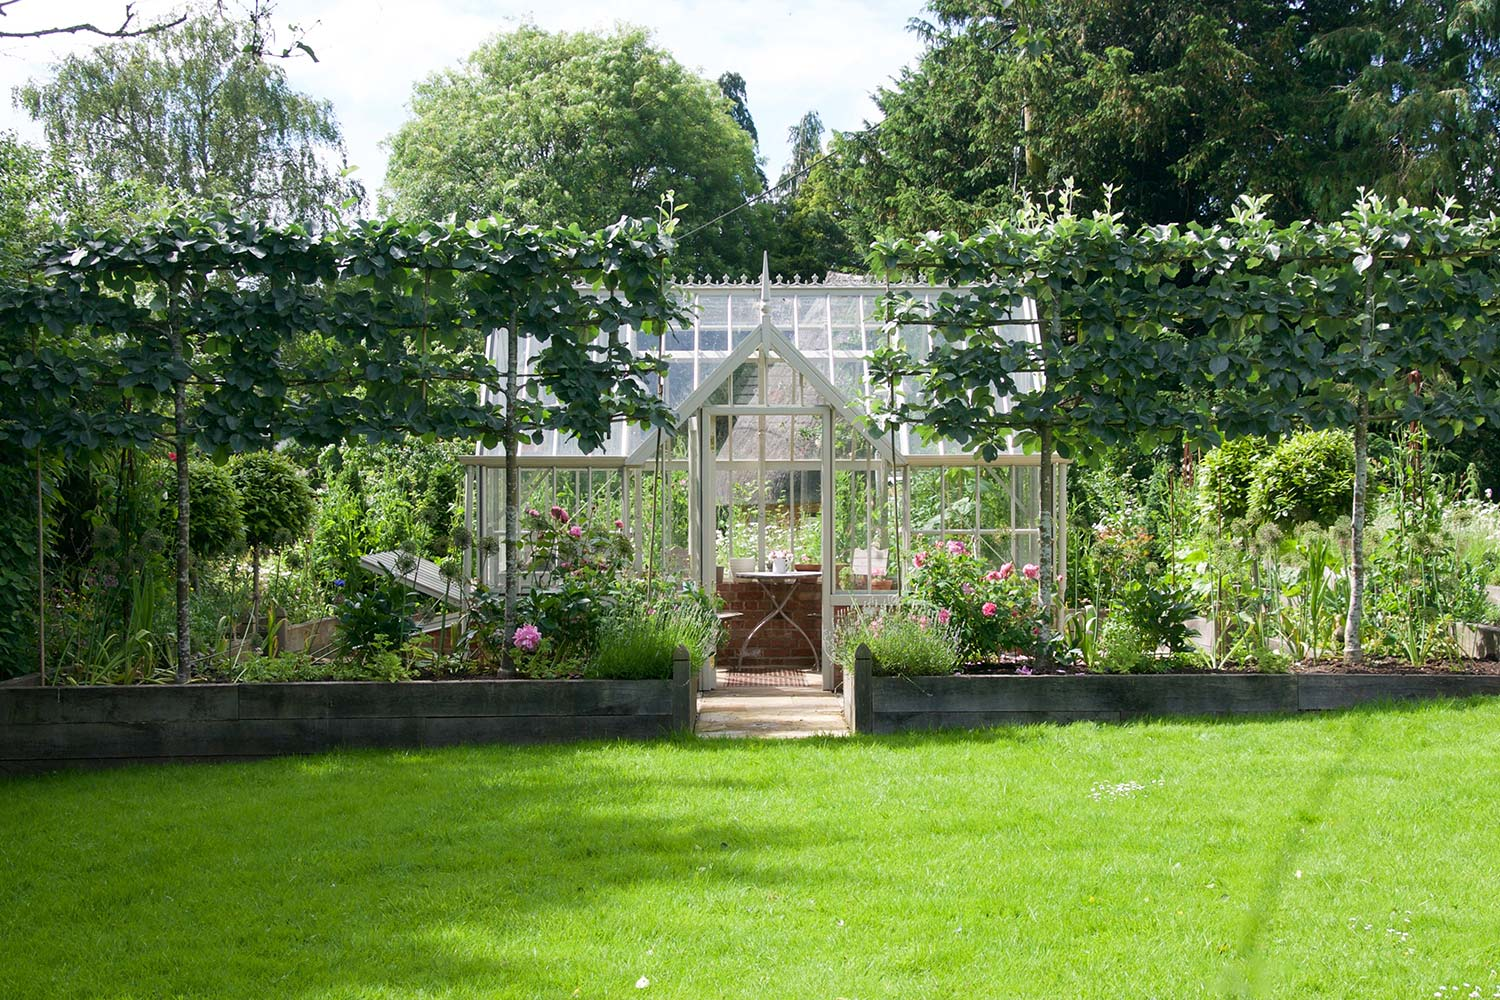 The Chambers Greenhouse from the Alitex Kew Greenhouse Collection